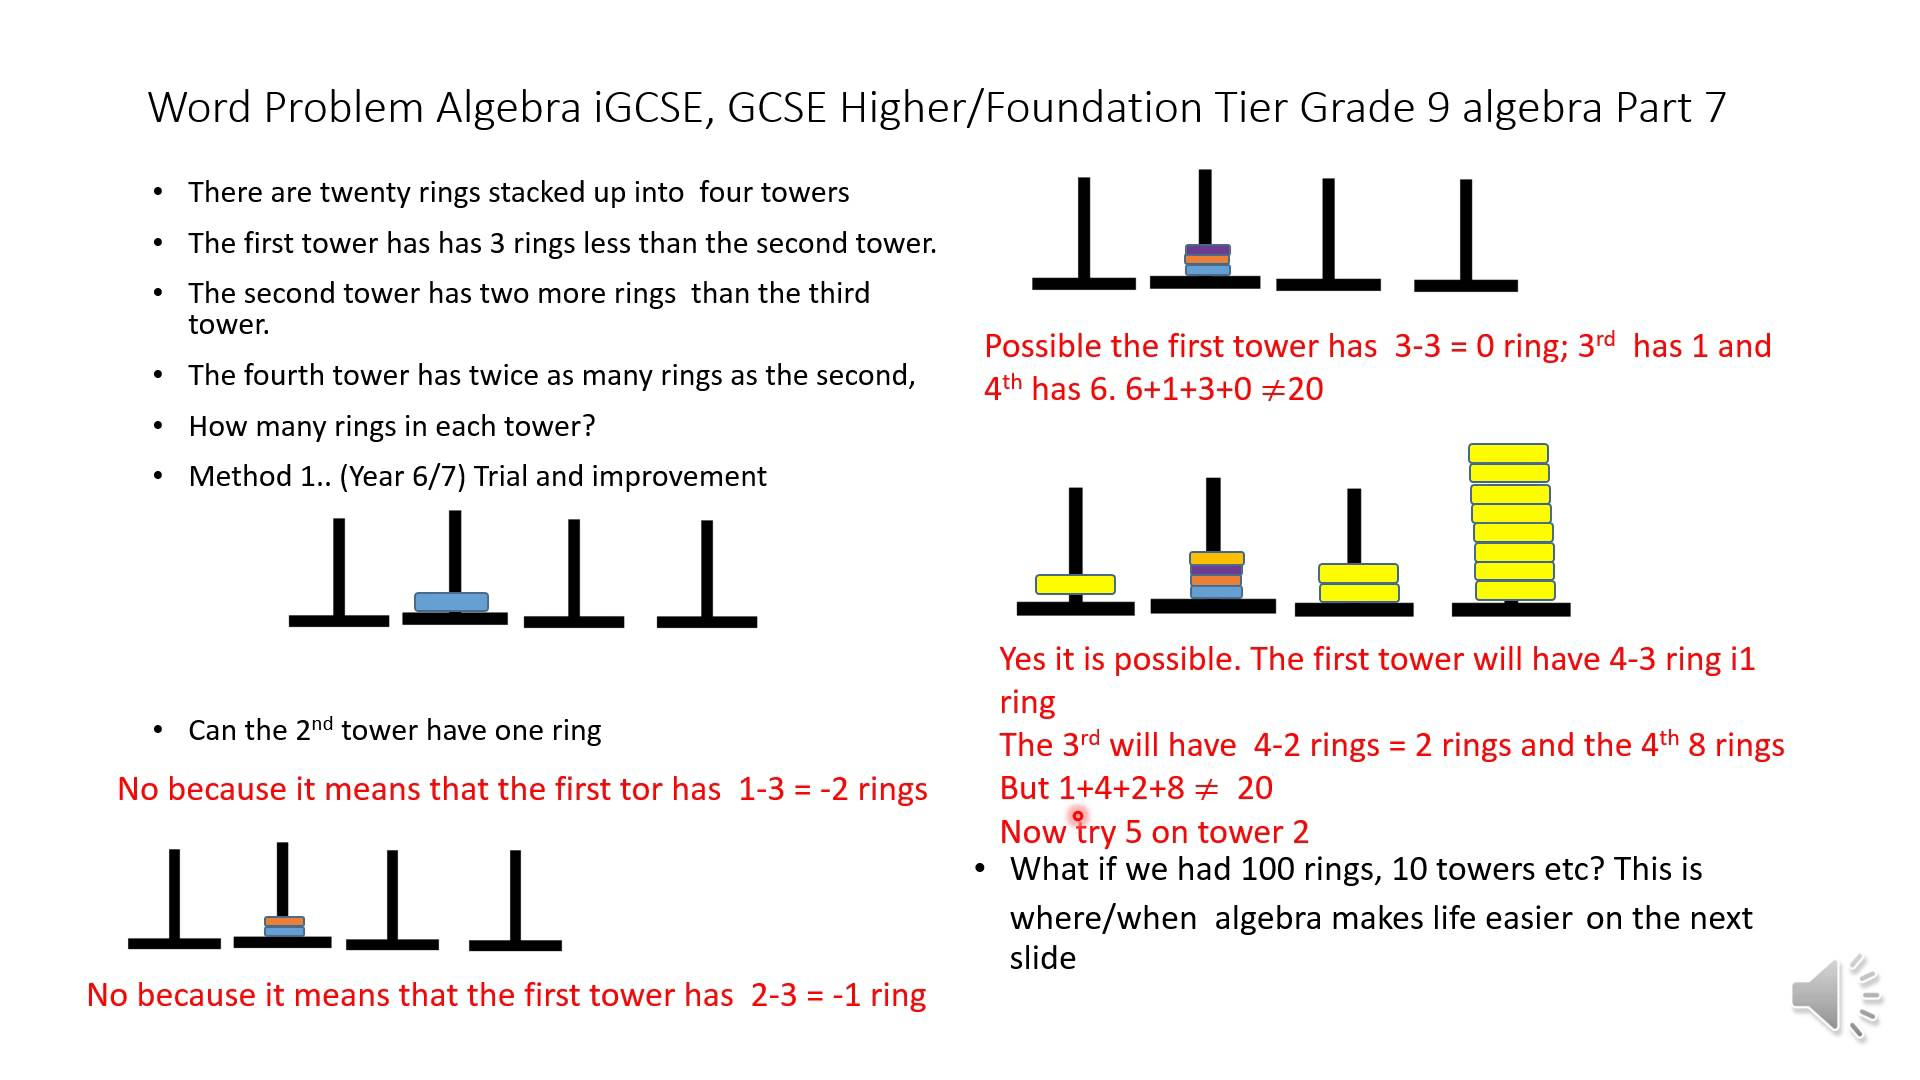 Math And Science Algebra 1 This Would Be Part C Ofsection 2 Electricity Of The Igcse Physics